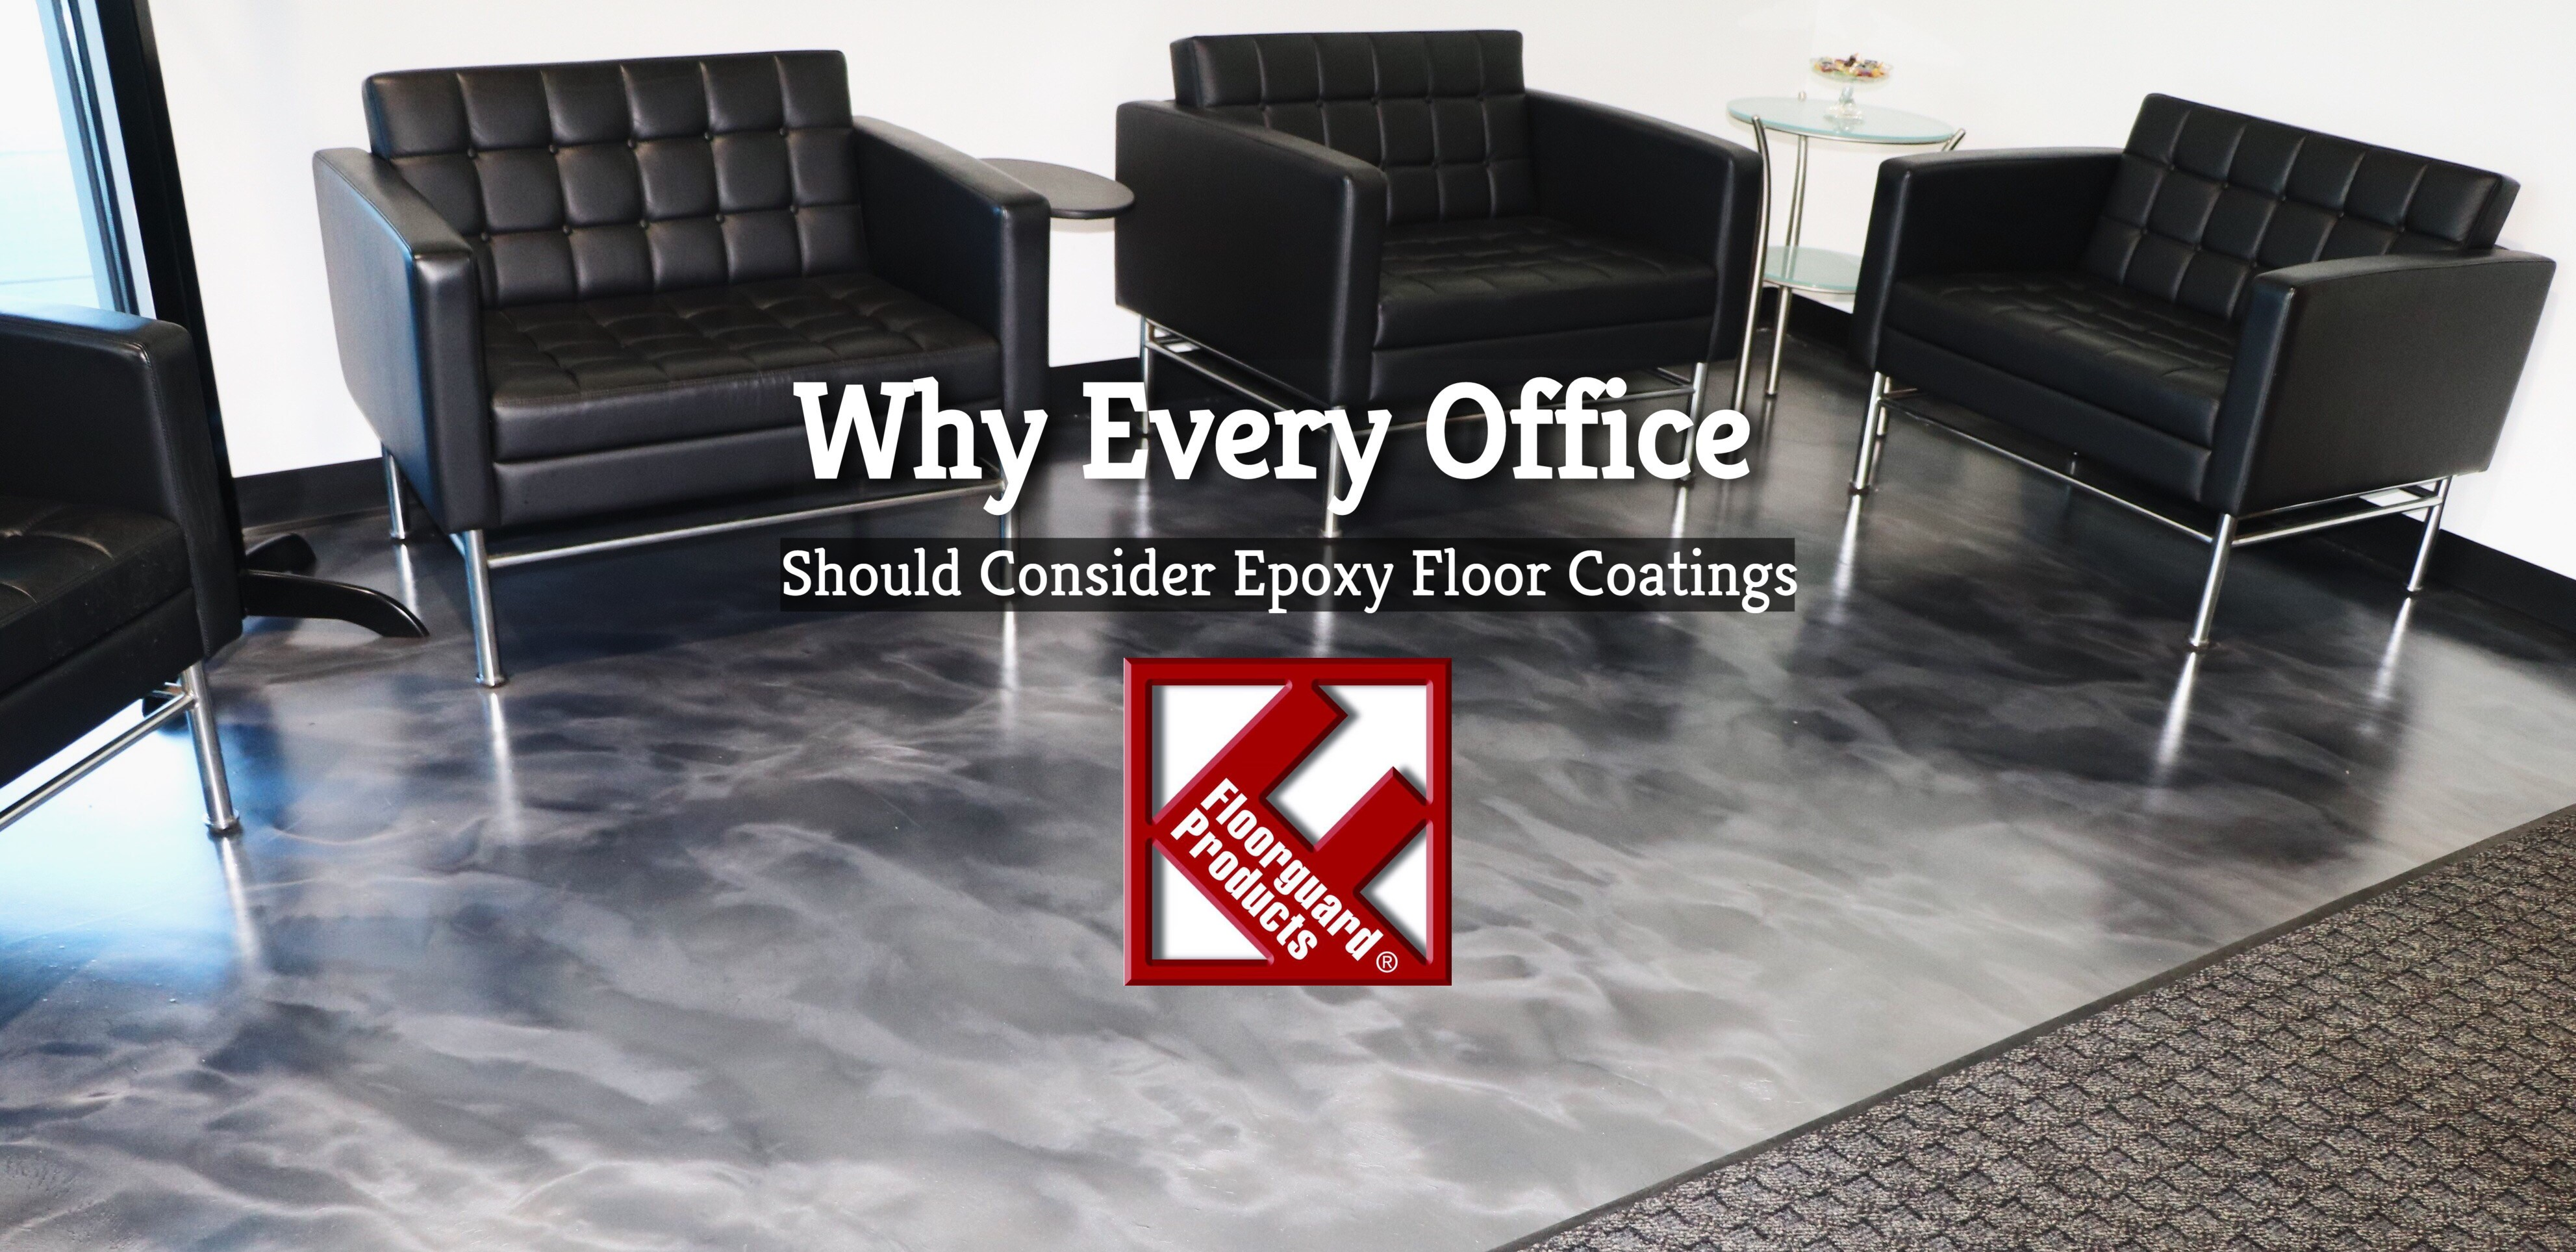 Why Every Office Should Consider Epoxy Floor Coatings - Floorguard